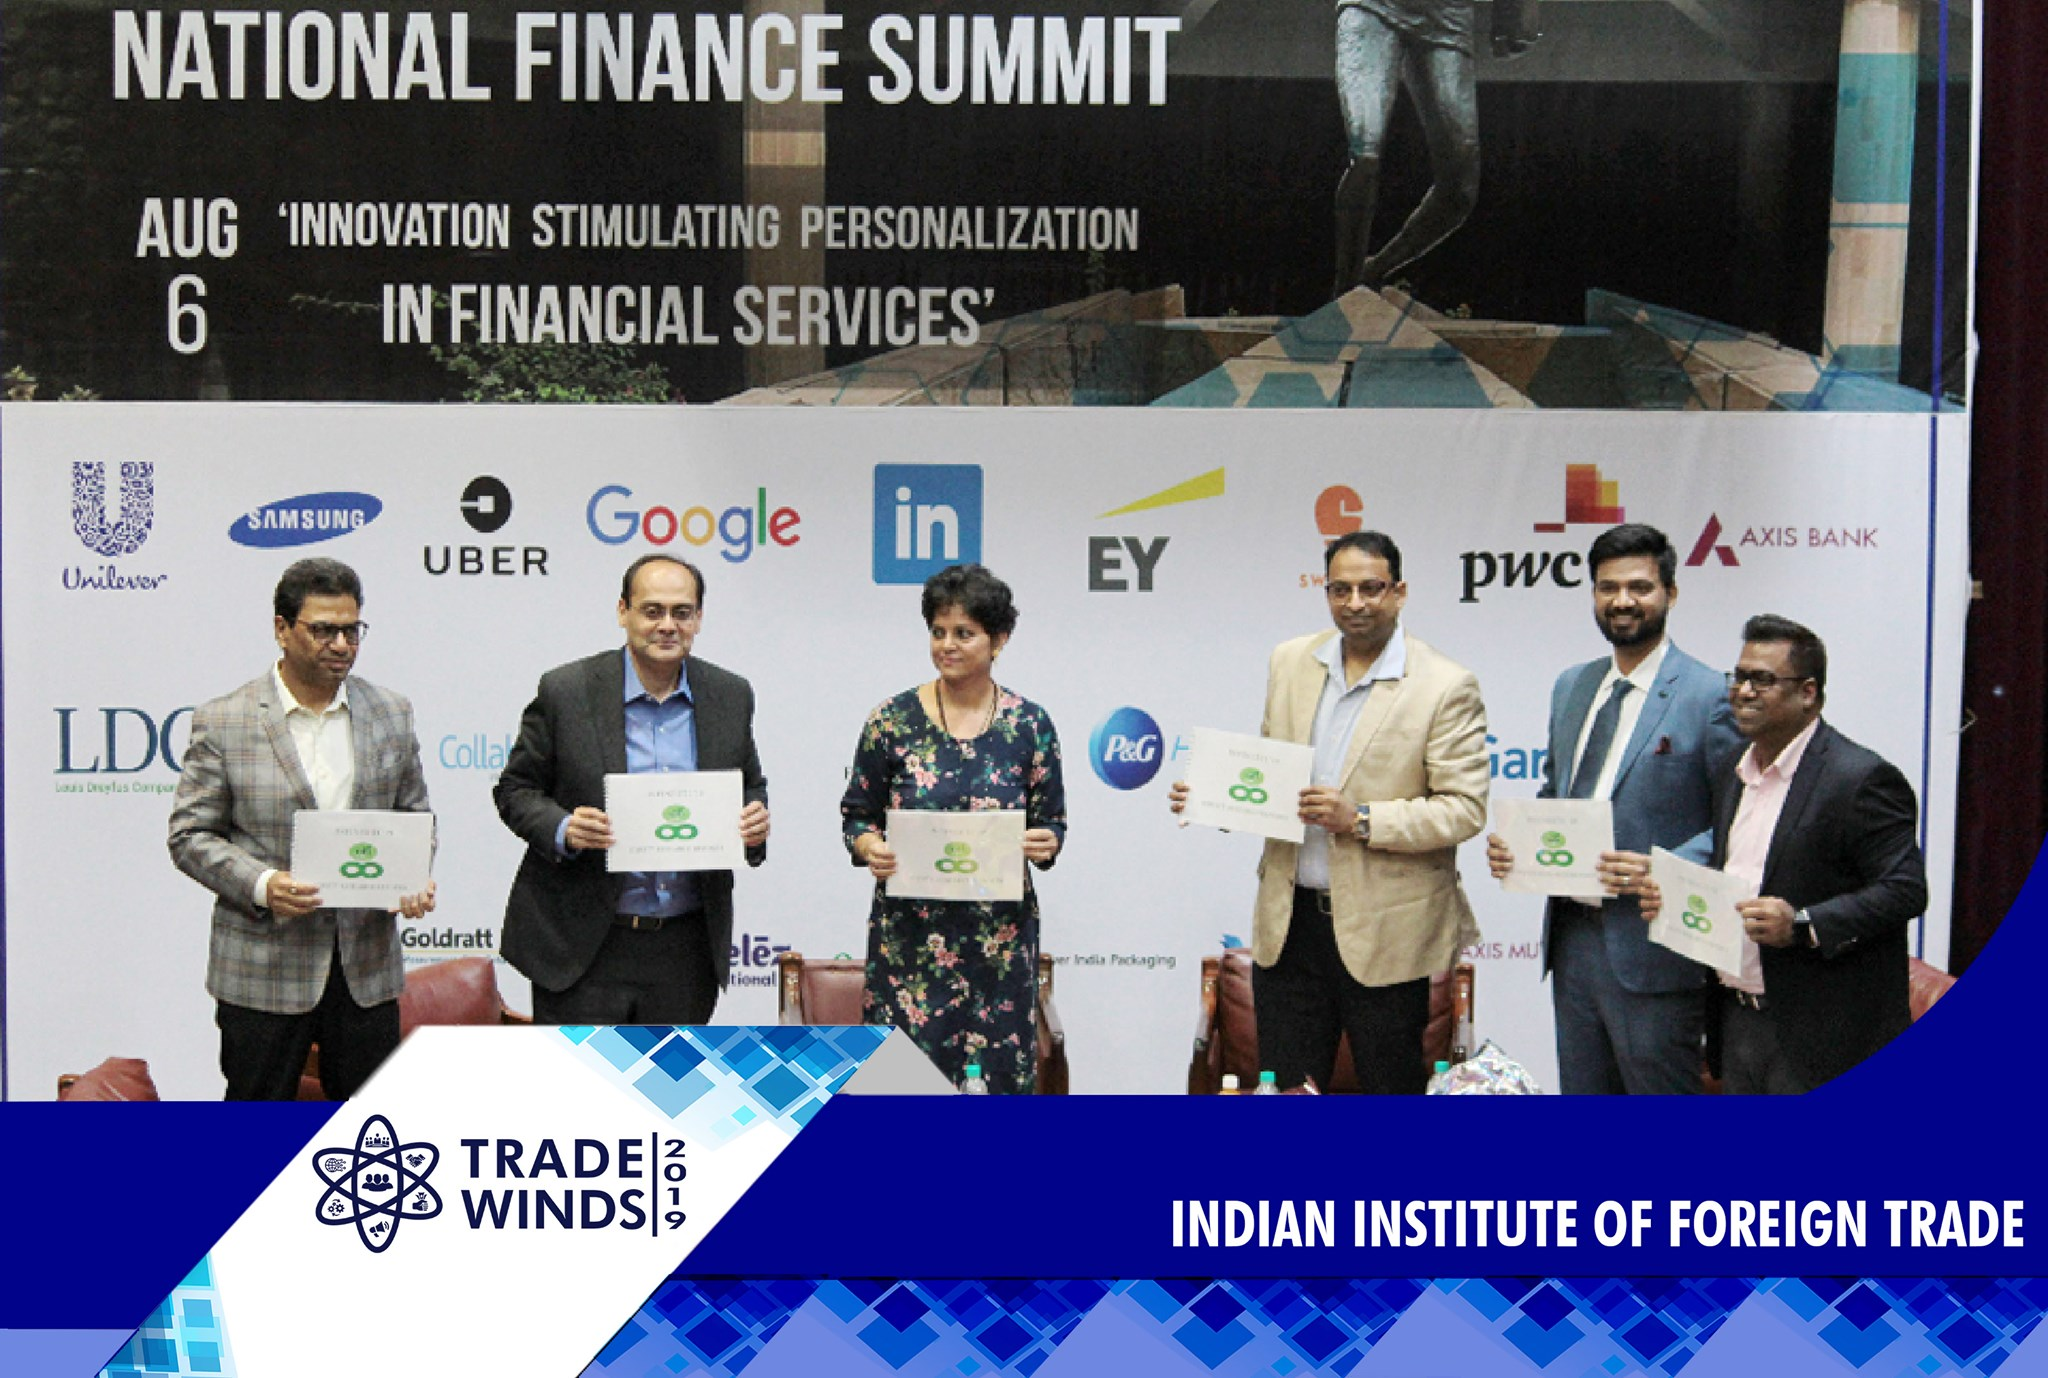 IIFT hosted National Finance Summit and National Trade Summit on the second day of Trade Winds 2019